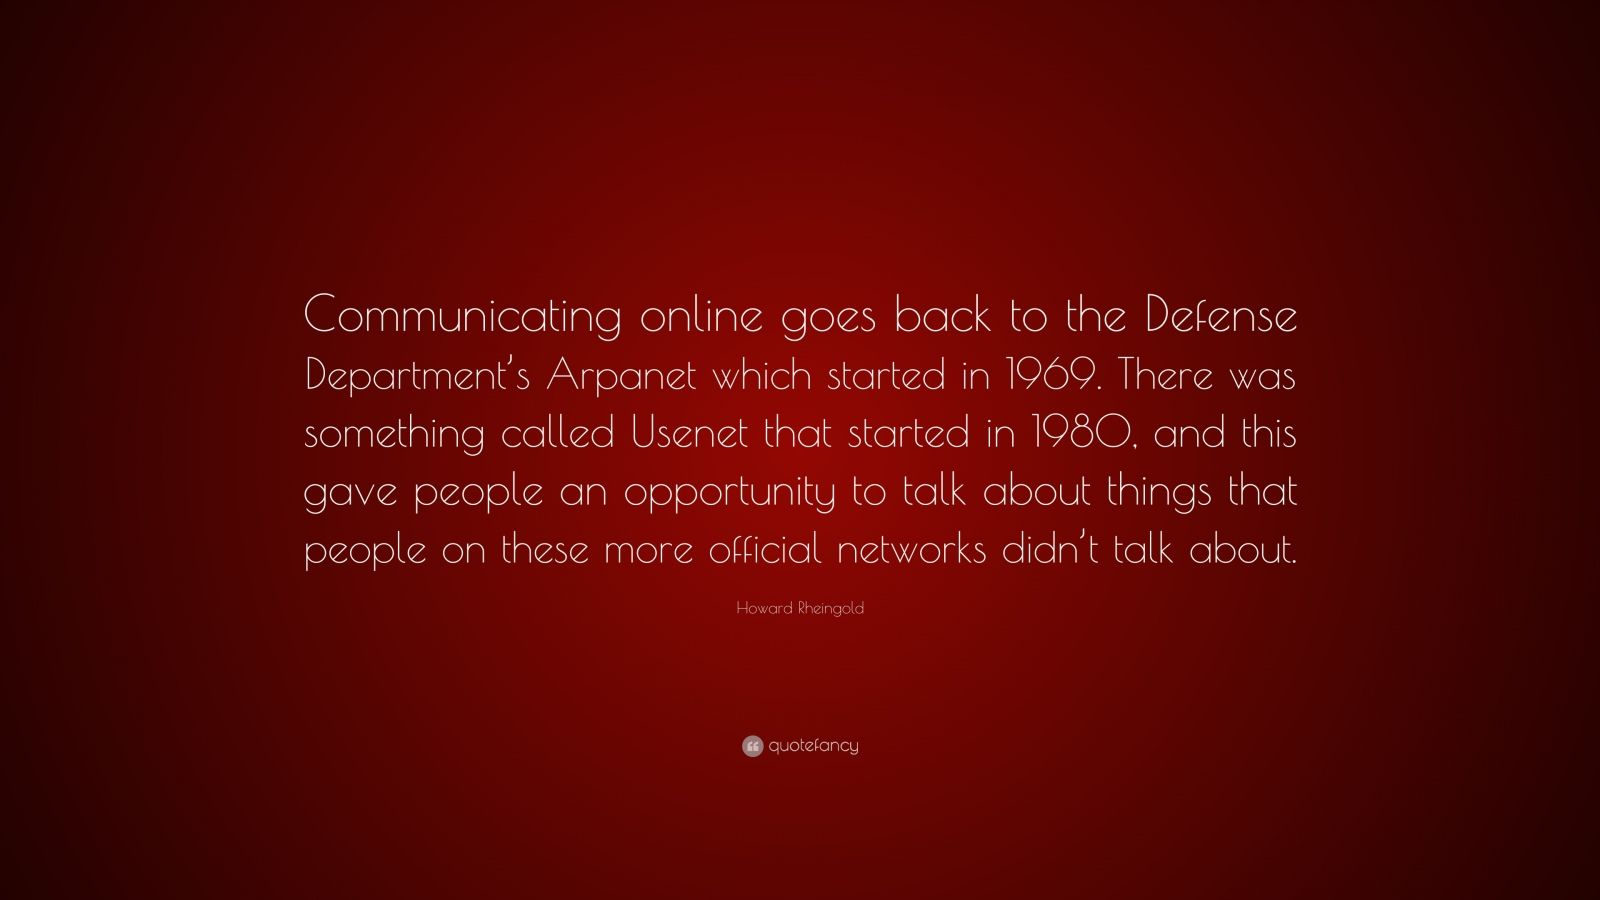 "Howard Rheingold Quote: ""Communicating online goes back to the Defense Department's Arpanet which started in 1969. There was something called Usenet that started in 1980, and this gave people an opportunity to talk about things that people on these more official networks didn't talk about."""